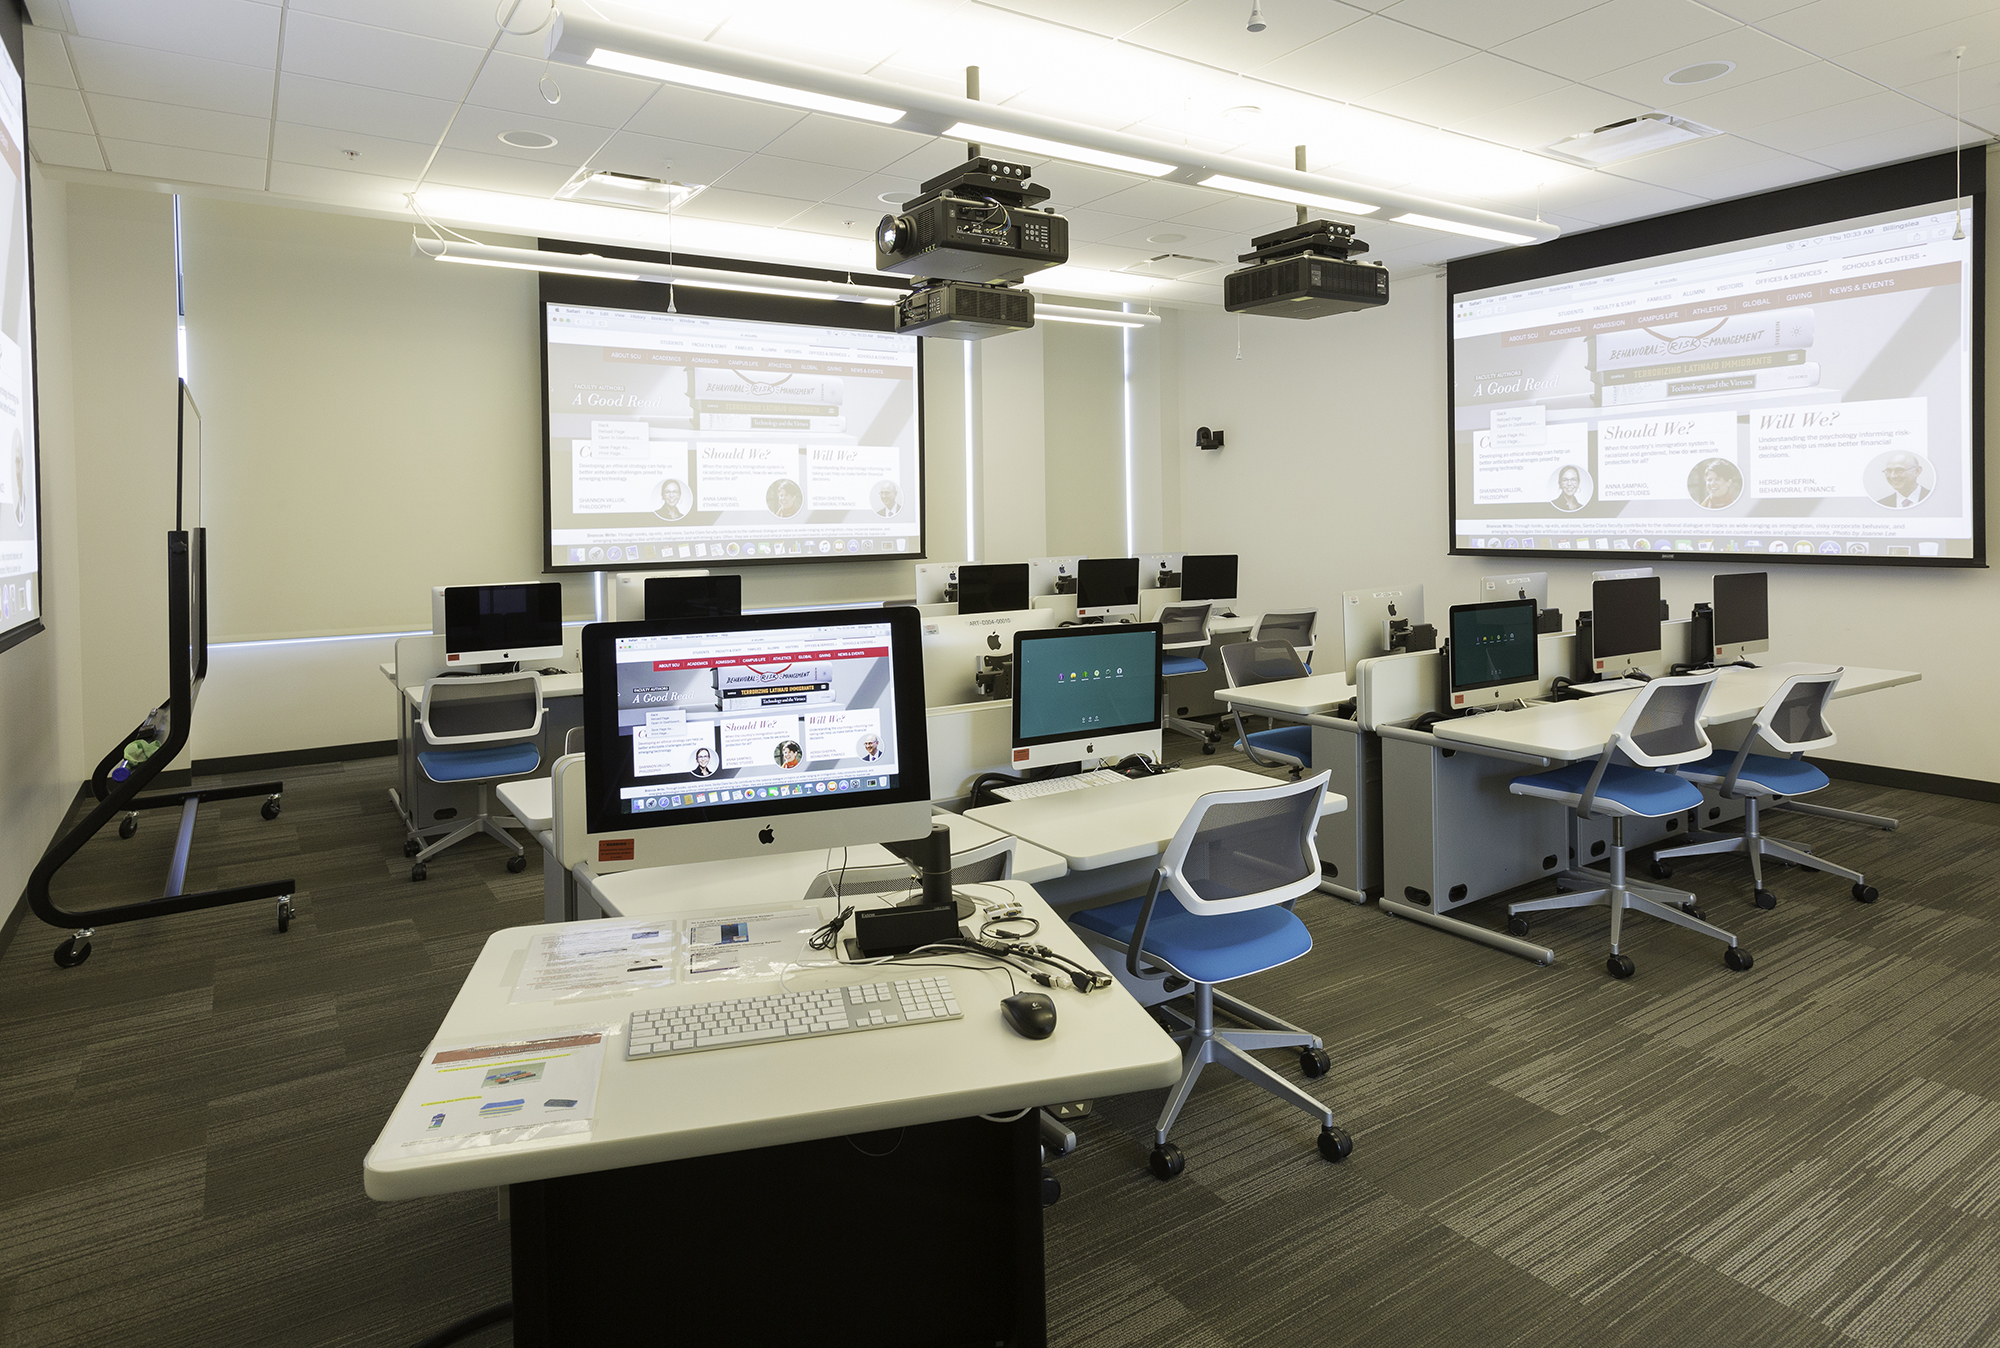 Each learning environment with a videoconferencing system is designed to support instruction and collaboration between local and remote locations.